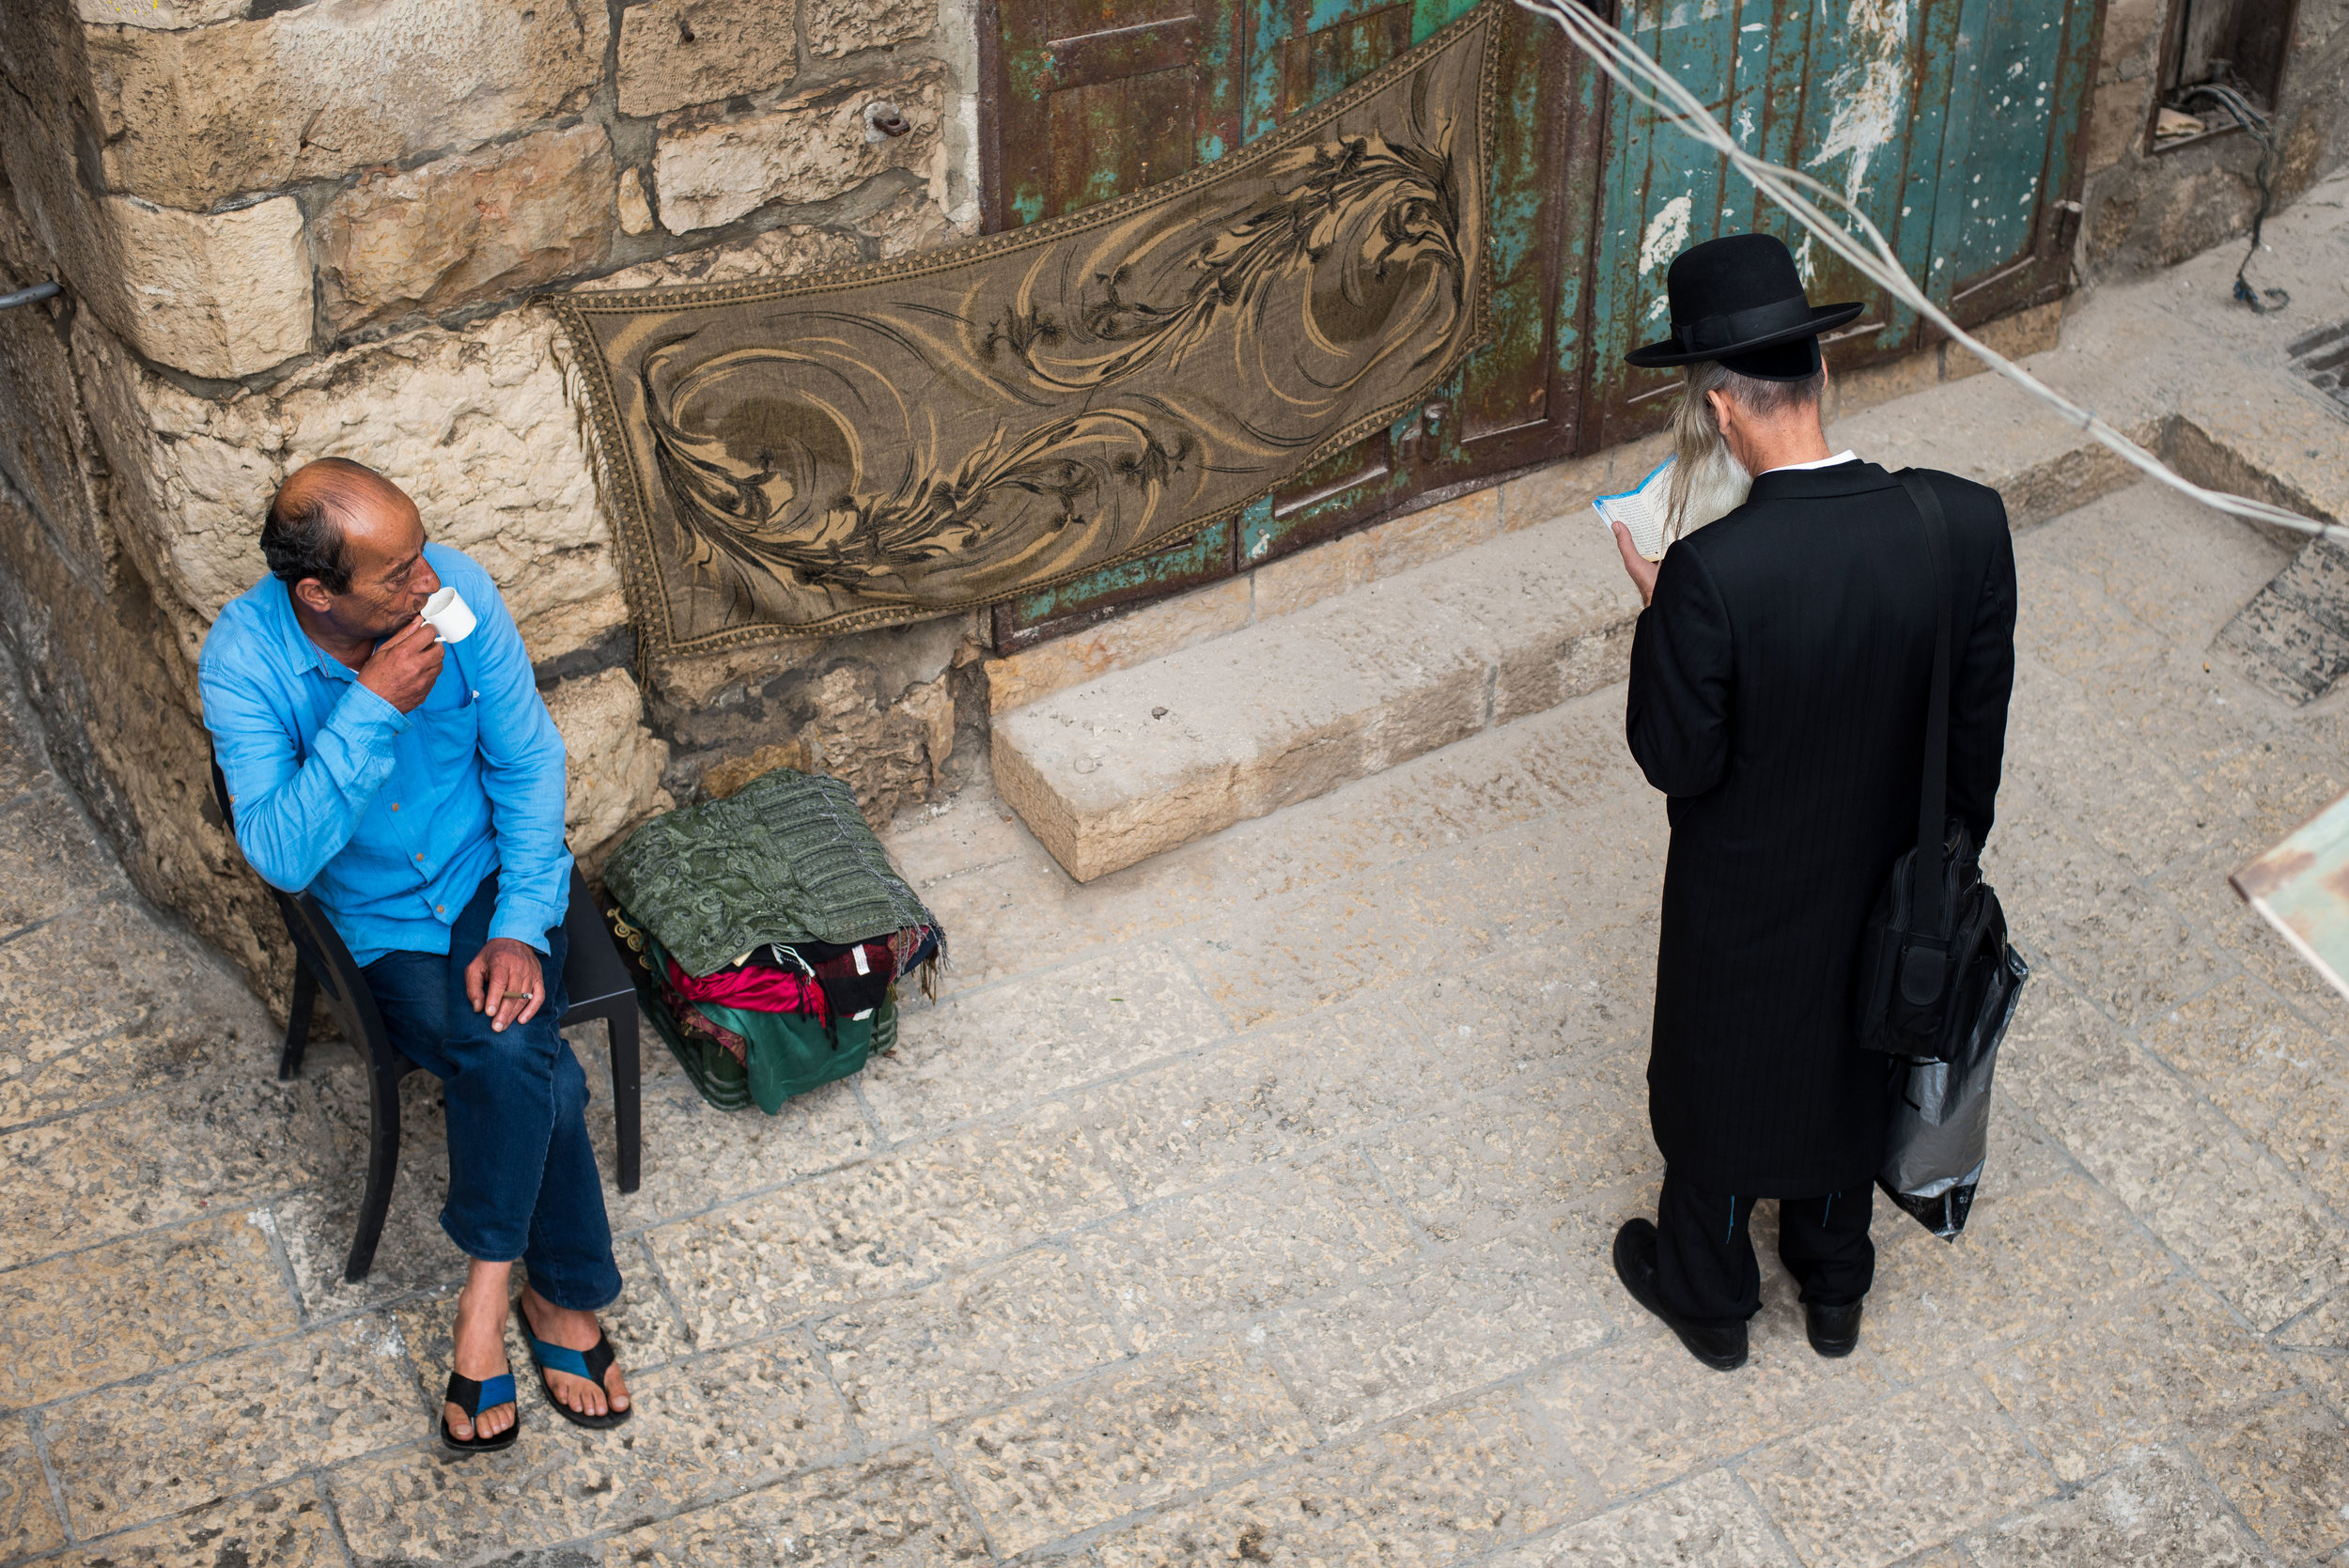 Neighbors_Old City Jerusalem_KatieA-W.jpg